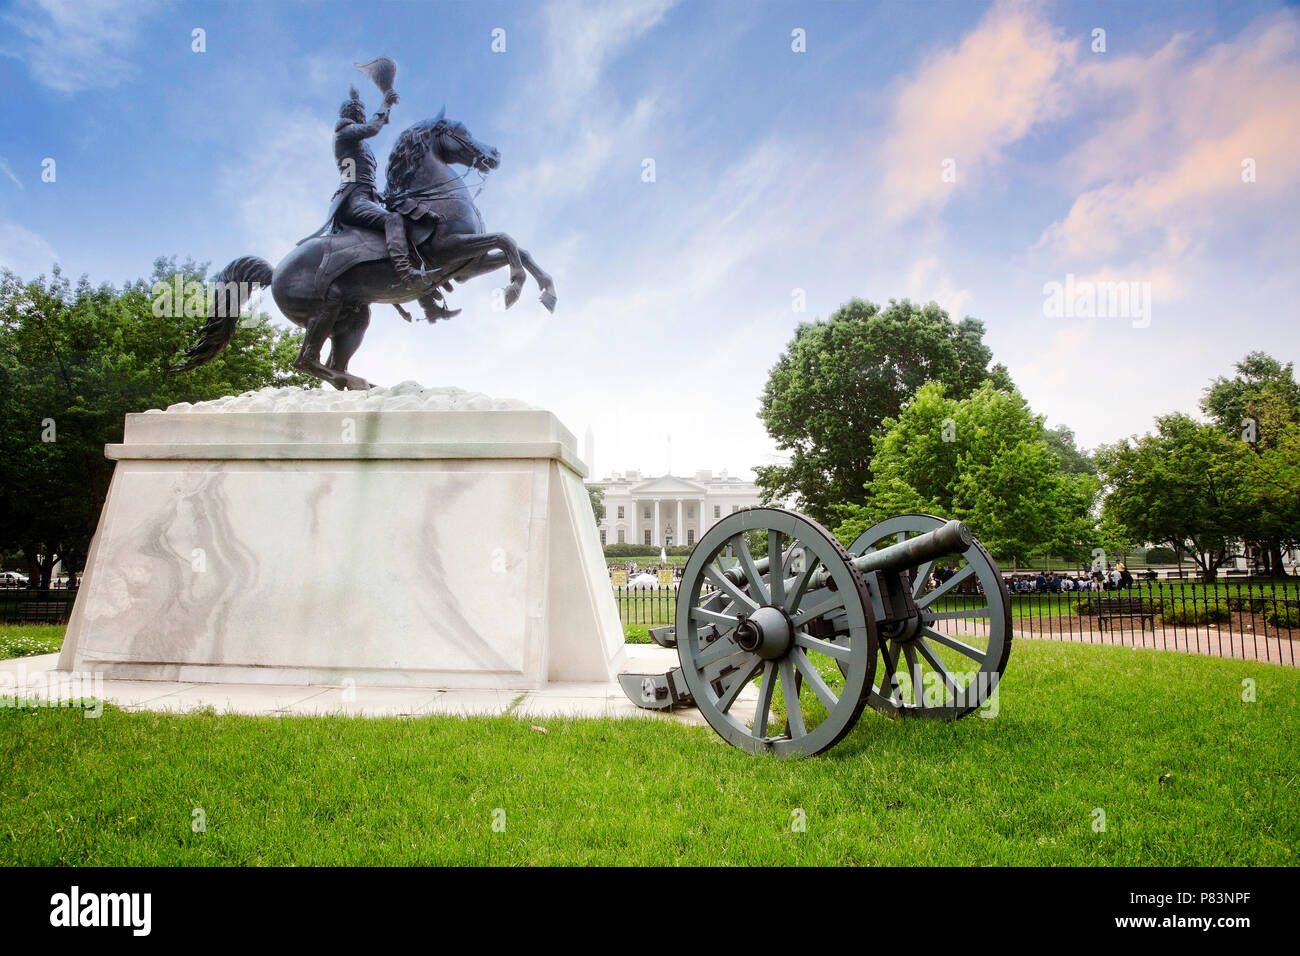 The statue of Andrew Jackson in Lafayette Square or Presidents Park north of the White House in Washington, DC. - Stock Image